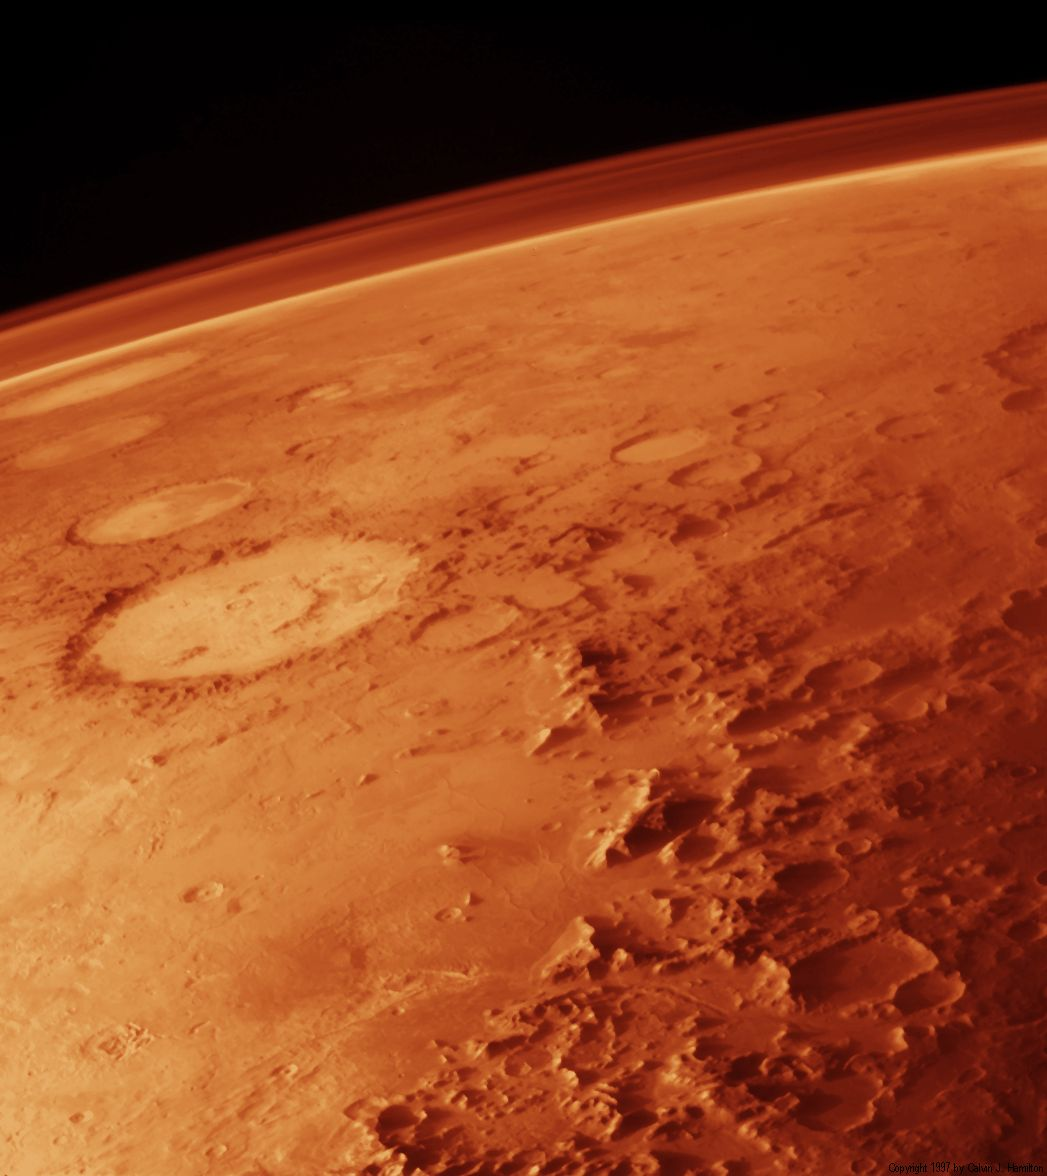 How life on Earth originated is a question that scientists and philosophers alike have pondered throughout the ages. Could life have originated elsewhere in the universe, such as Mars? The idea of panspermia continues to filter into mainstream science, despite opponents.